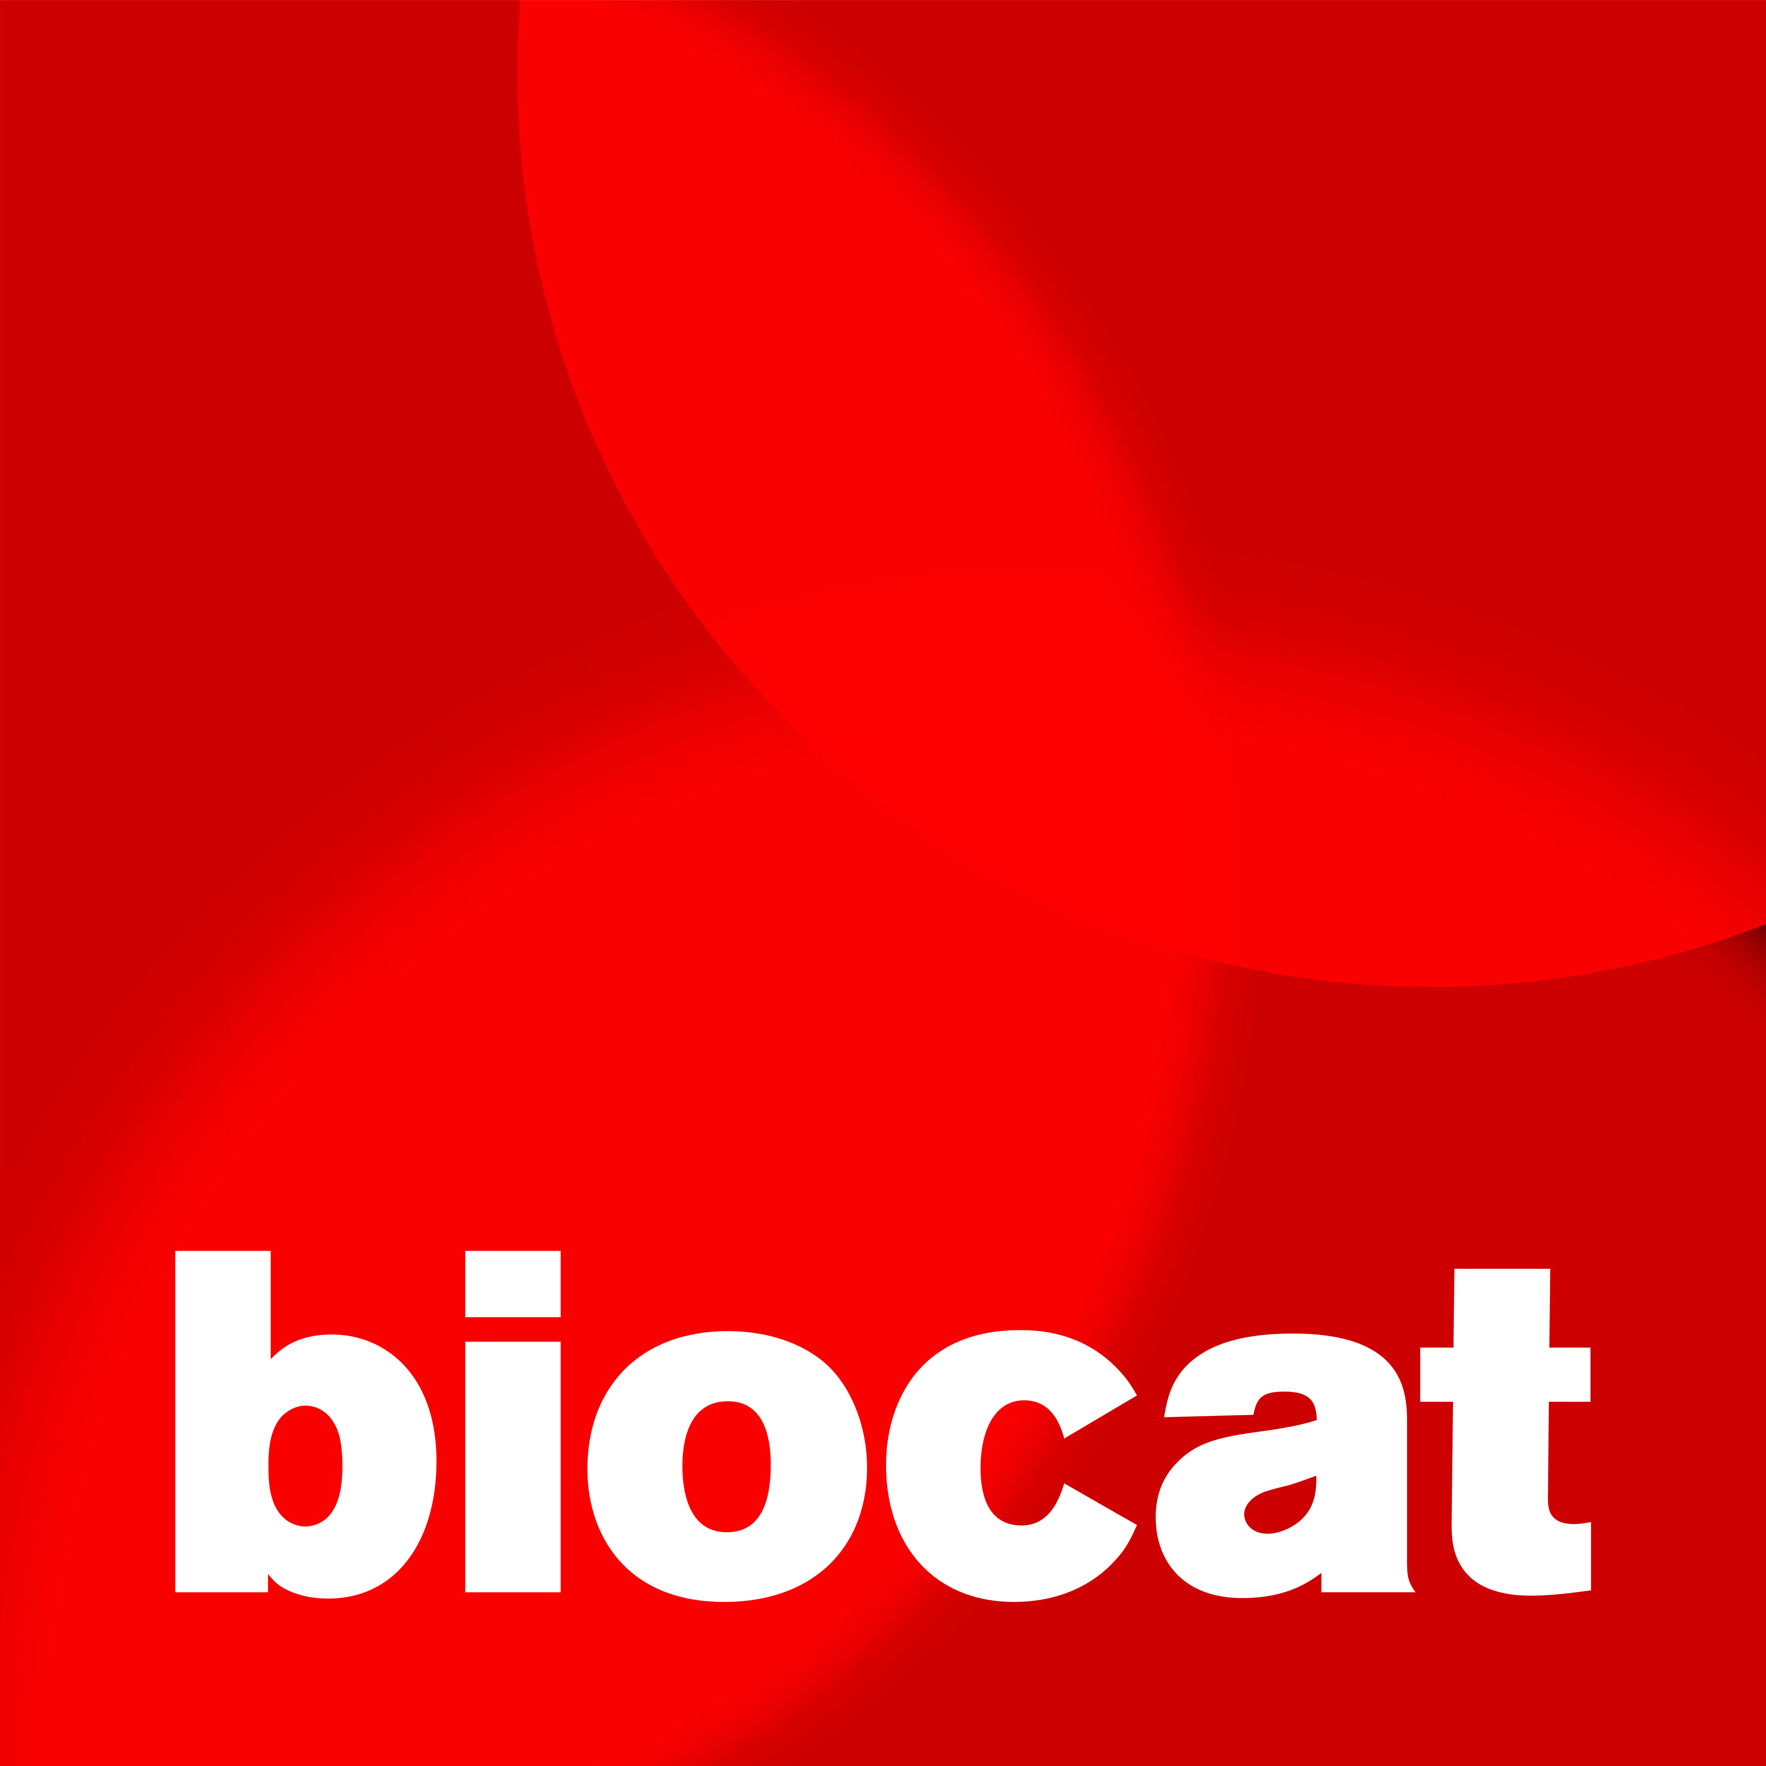 http://www.biocat.cat/sites/all/themes/biocat/images/Logo_Biocat_RGB.jpg